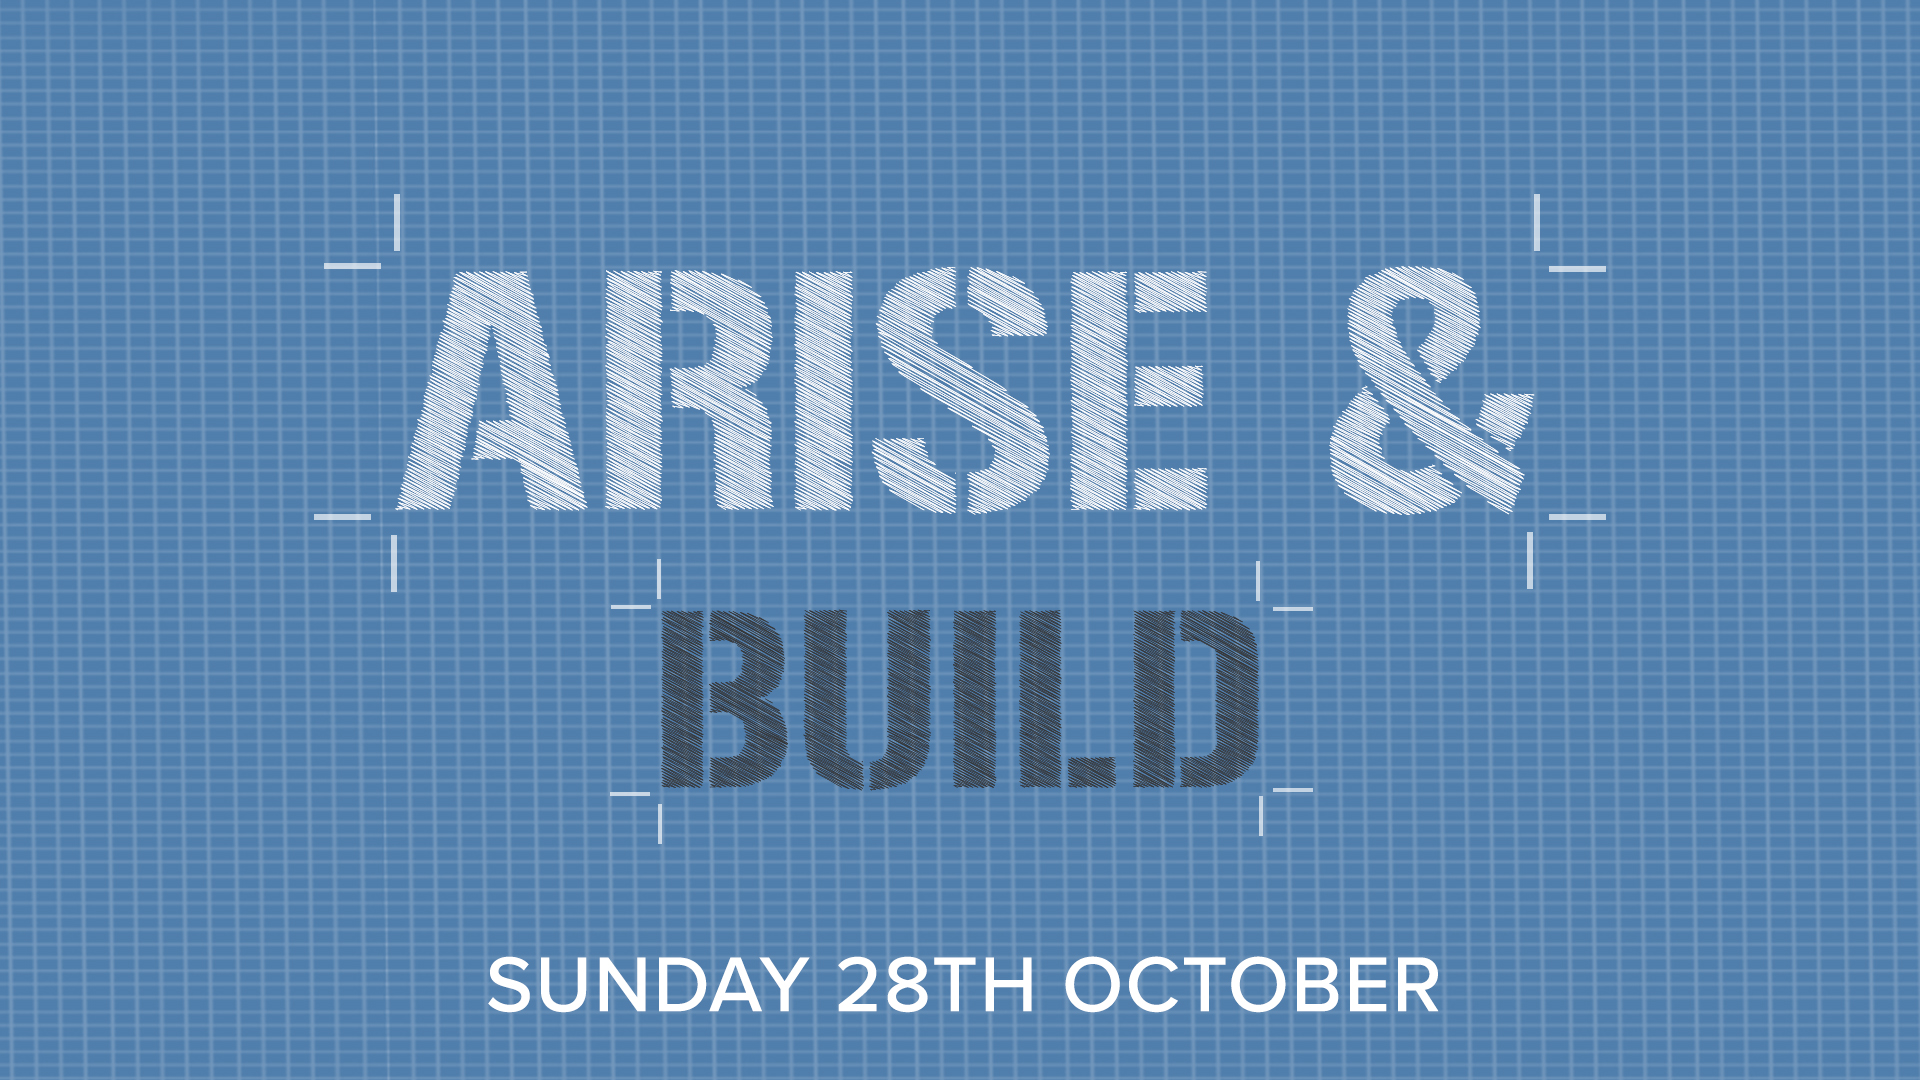 Arise & Build-2018-foyer.JPG